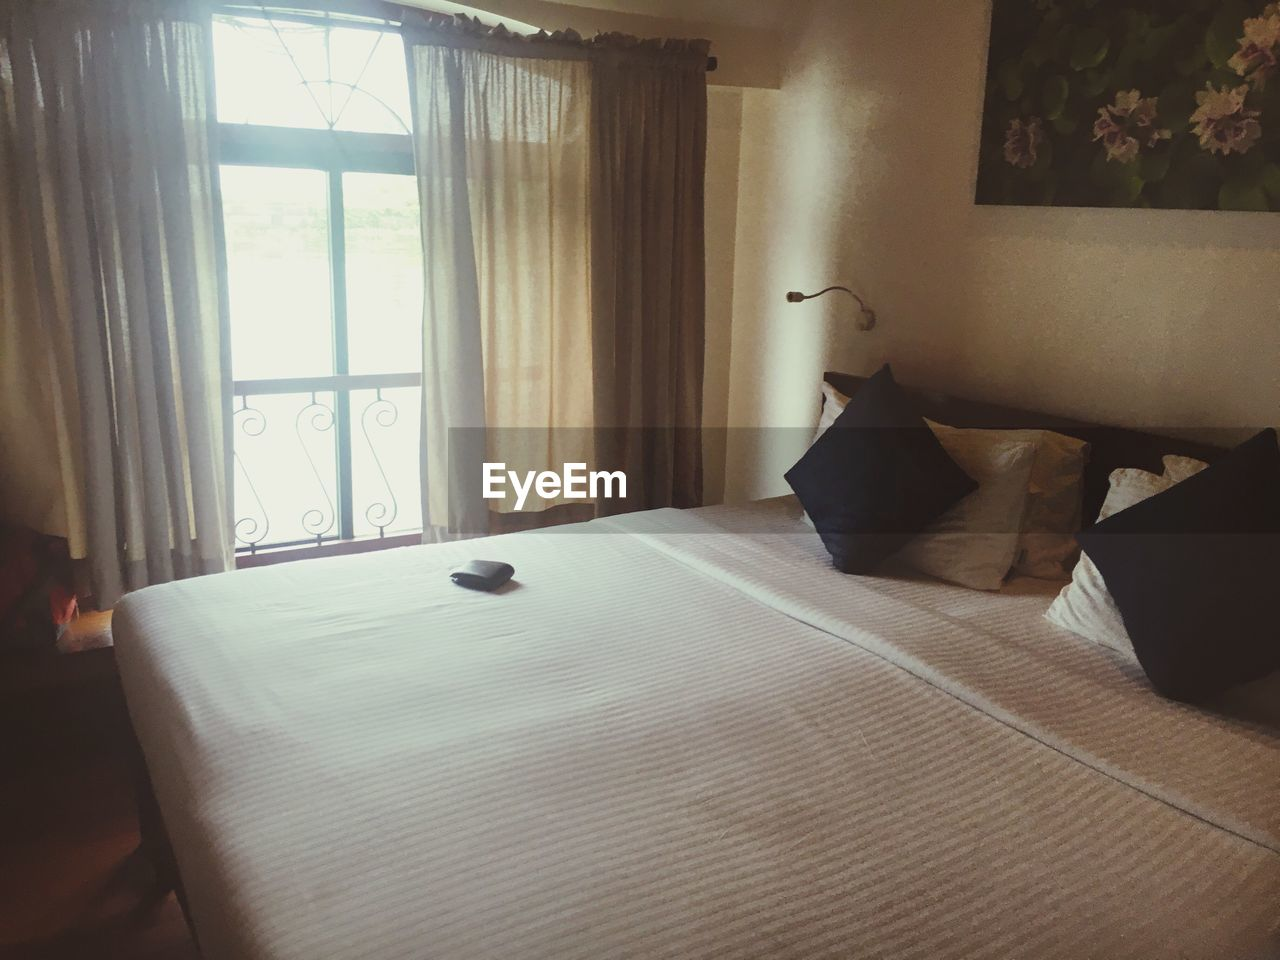 indoors, home interior, window, table, no people, pillow, bedroom, home showcase interior, day, living room, bed, domestic room